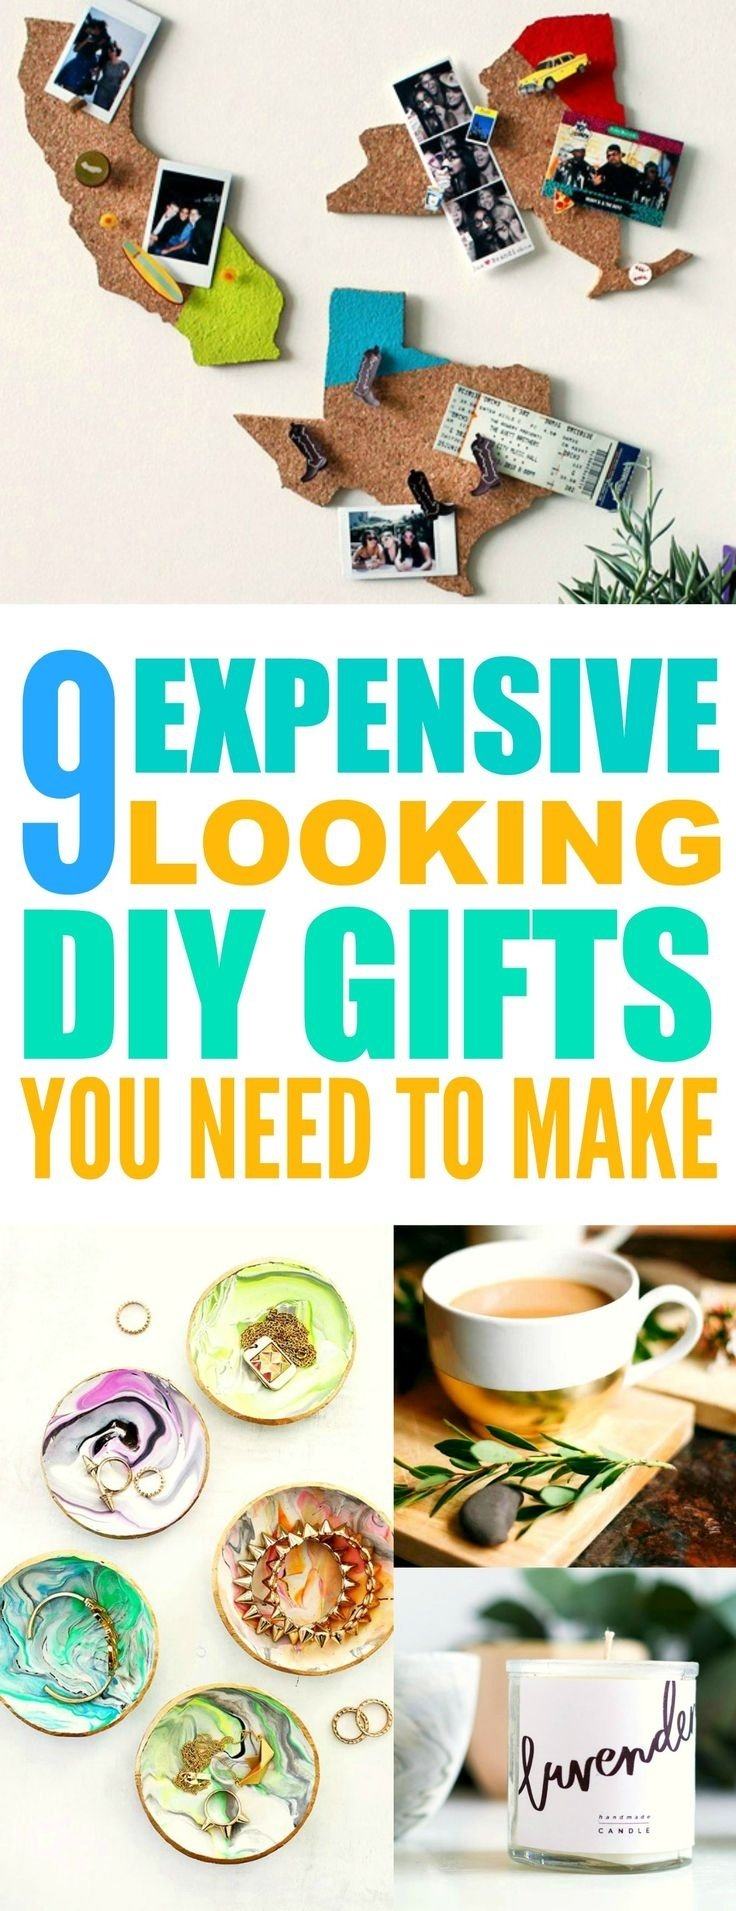 10 Attractive Awesome Birthday Ideas For Her 224 best gift ideas images on pinterest amazing gifts gift ideas 1 2020